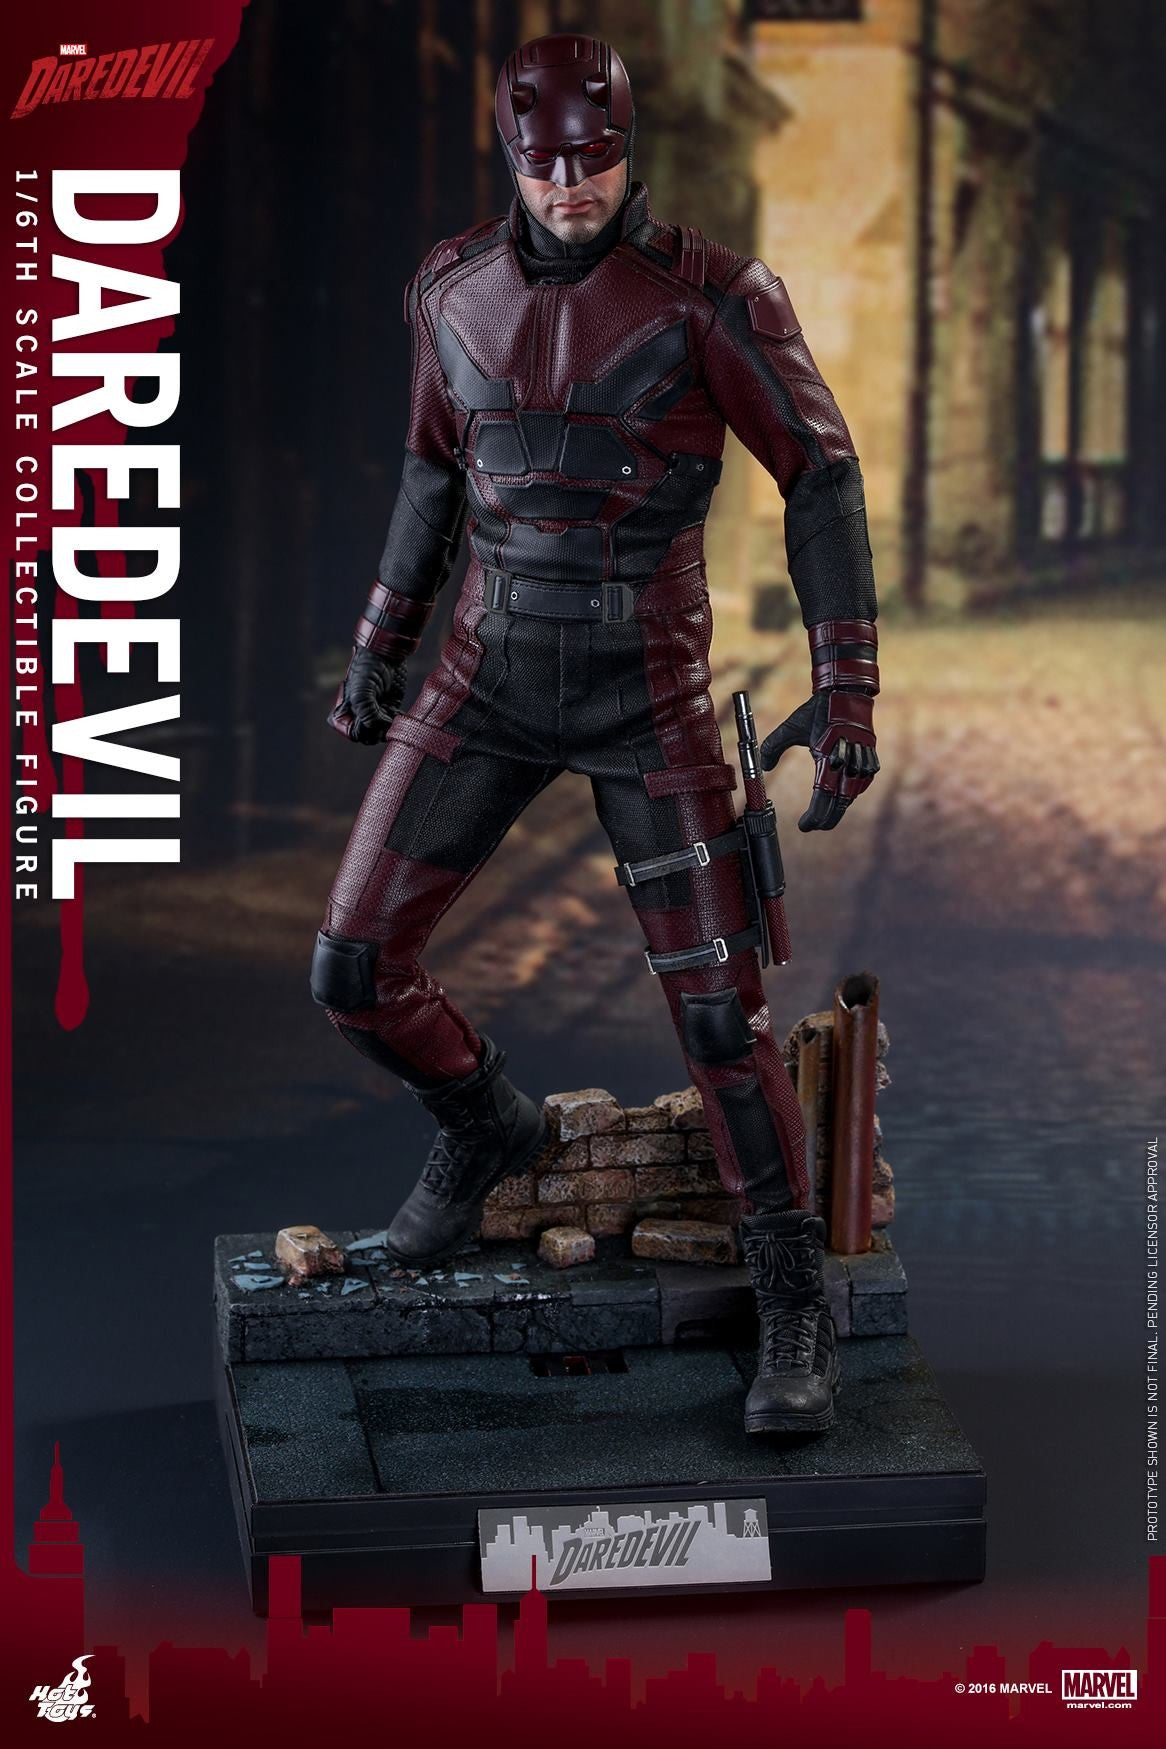 Hot Toys - TMS003 - Marvel's Daredevil - Daredevil - Marvelous Toys - 8